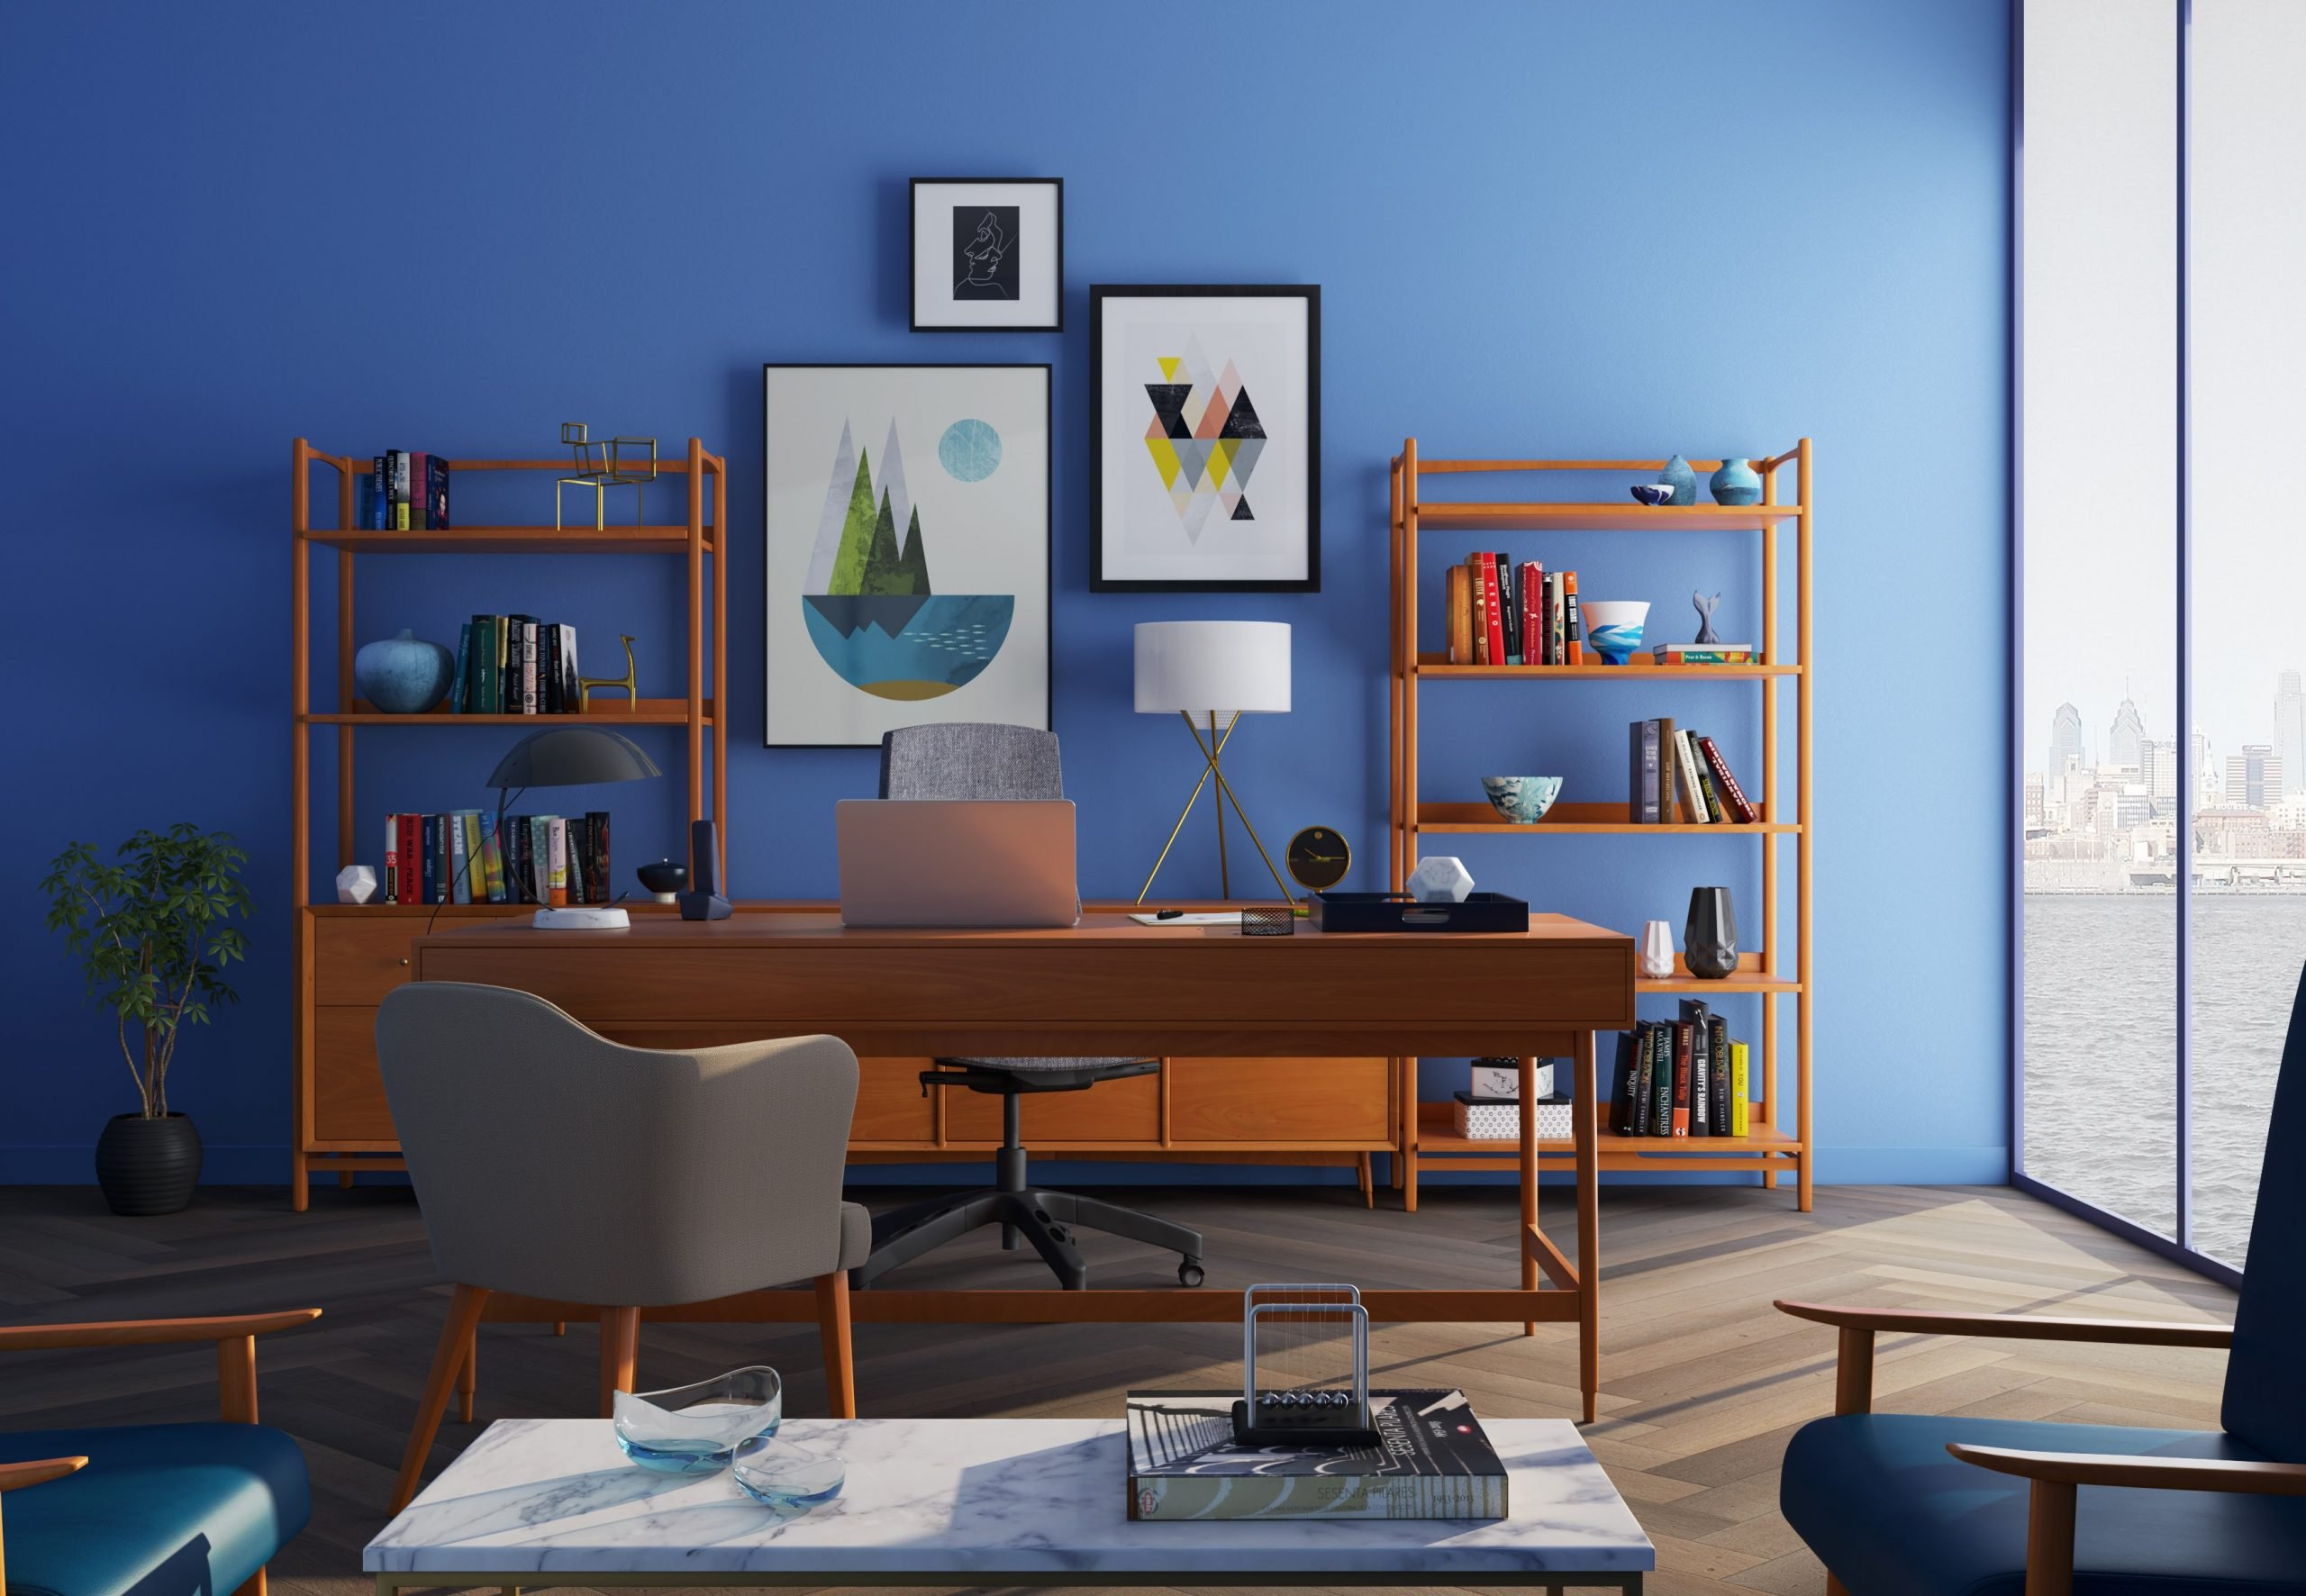 Creating Clarity by Simplifying your Space